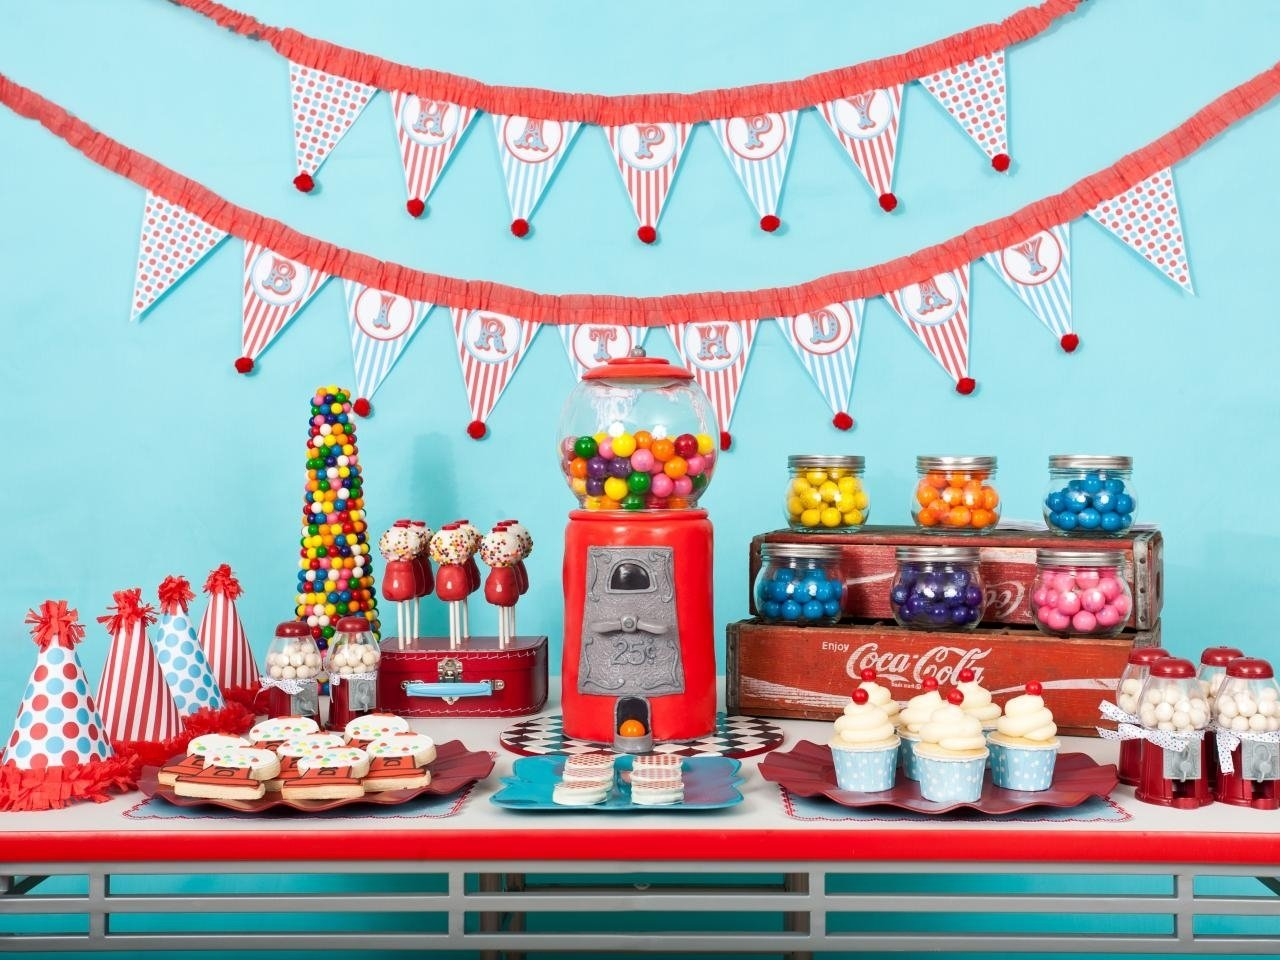 10 Unique Birthday Party Ideas For 12 Year Old Boys best boy birthday party theme decorations 12 year old birthday party 4